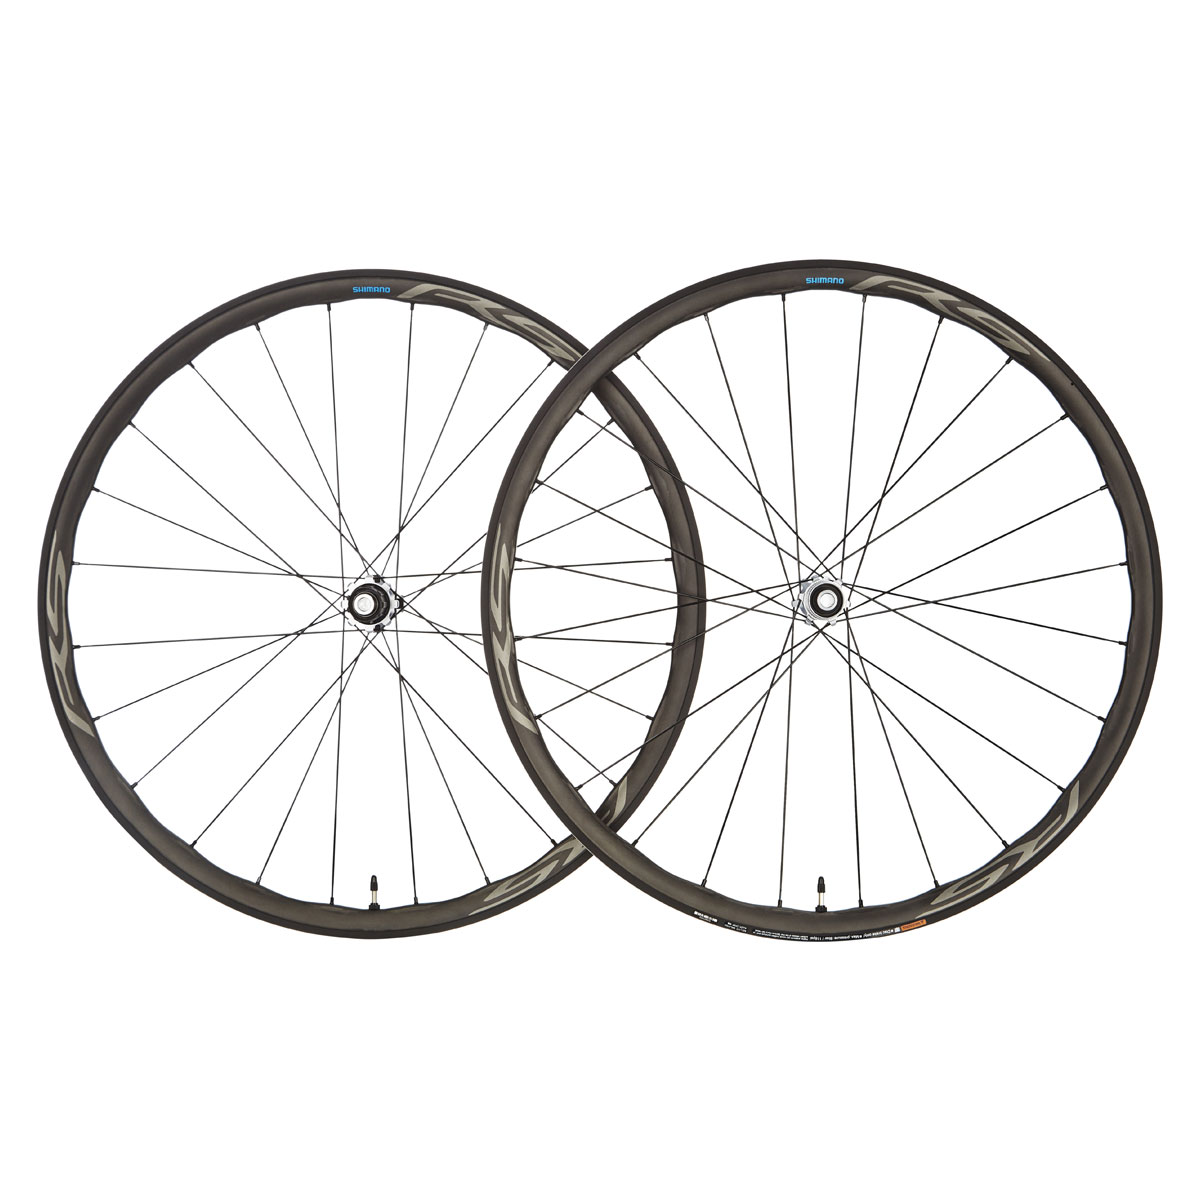 ROUES SHIMANO WH-RS770-C30-TL-P12 DISC CENTERLOCK 142/12TUBELESS PAIRE - DEMO